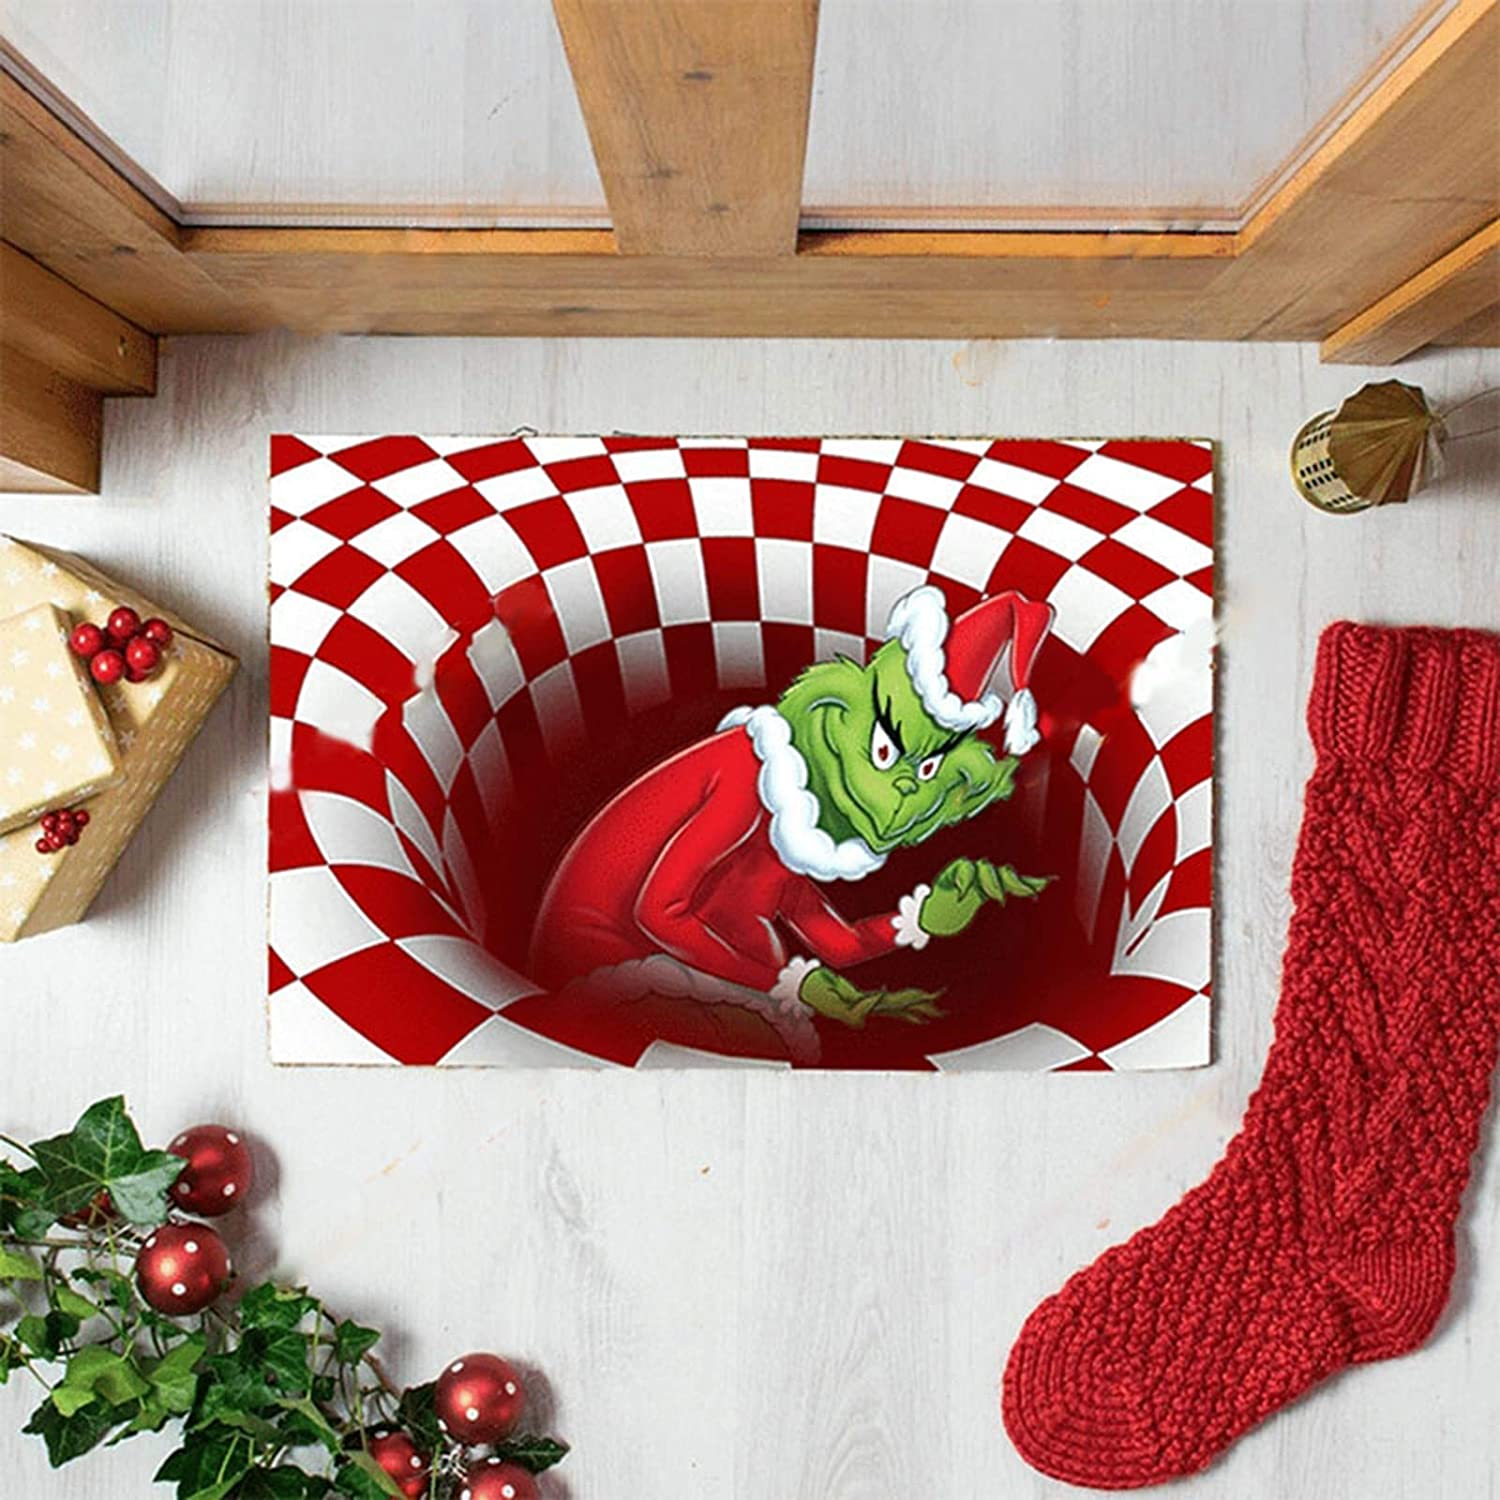 N//H Grinch Illusion Doormat,Christmas Decoration Door Mat,3D Visual Illusion Shaggy Rug for Bedroom Home Decor,Quickly Absorb Moisture and Resist Dirt Rugs Black, 50X80 cm